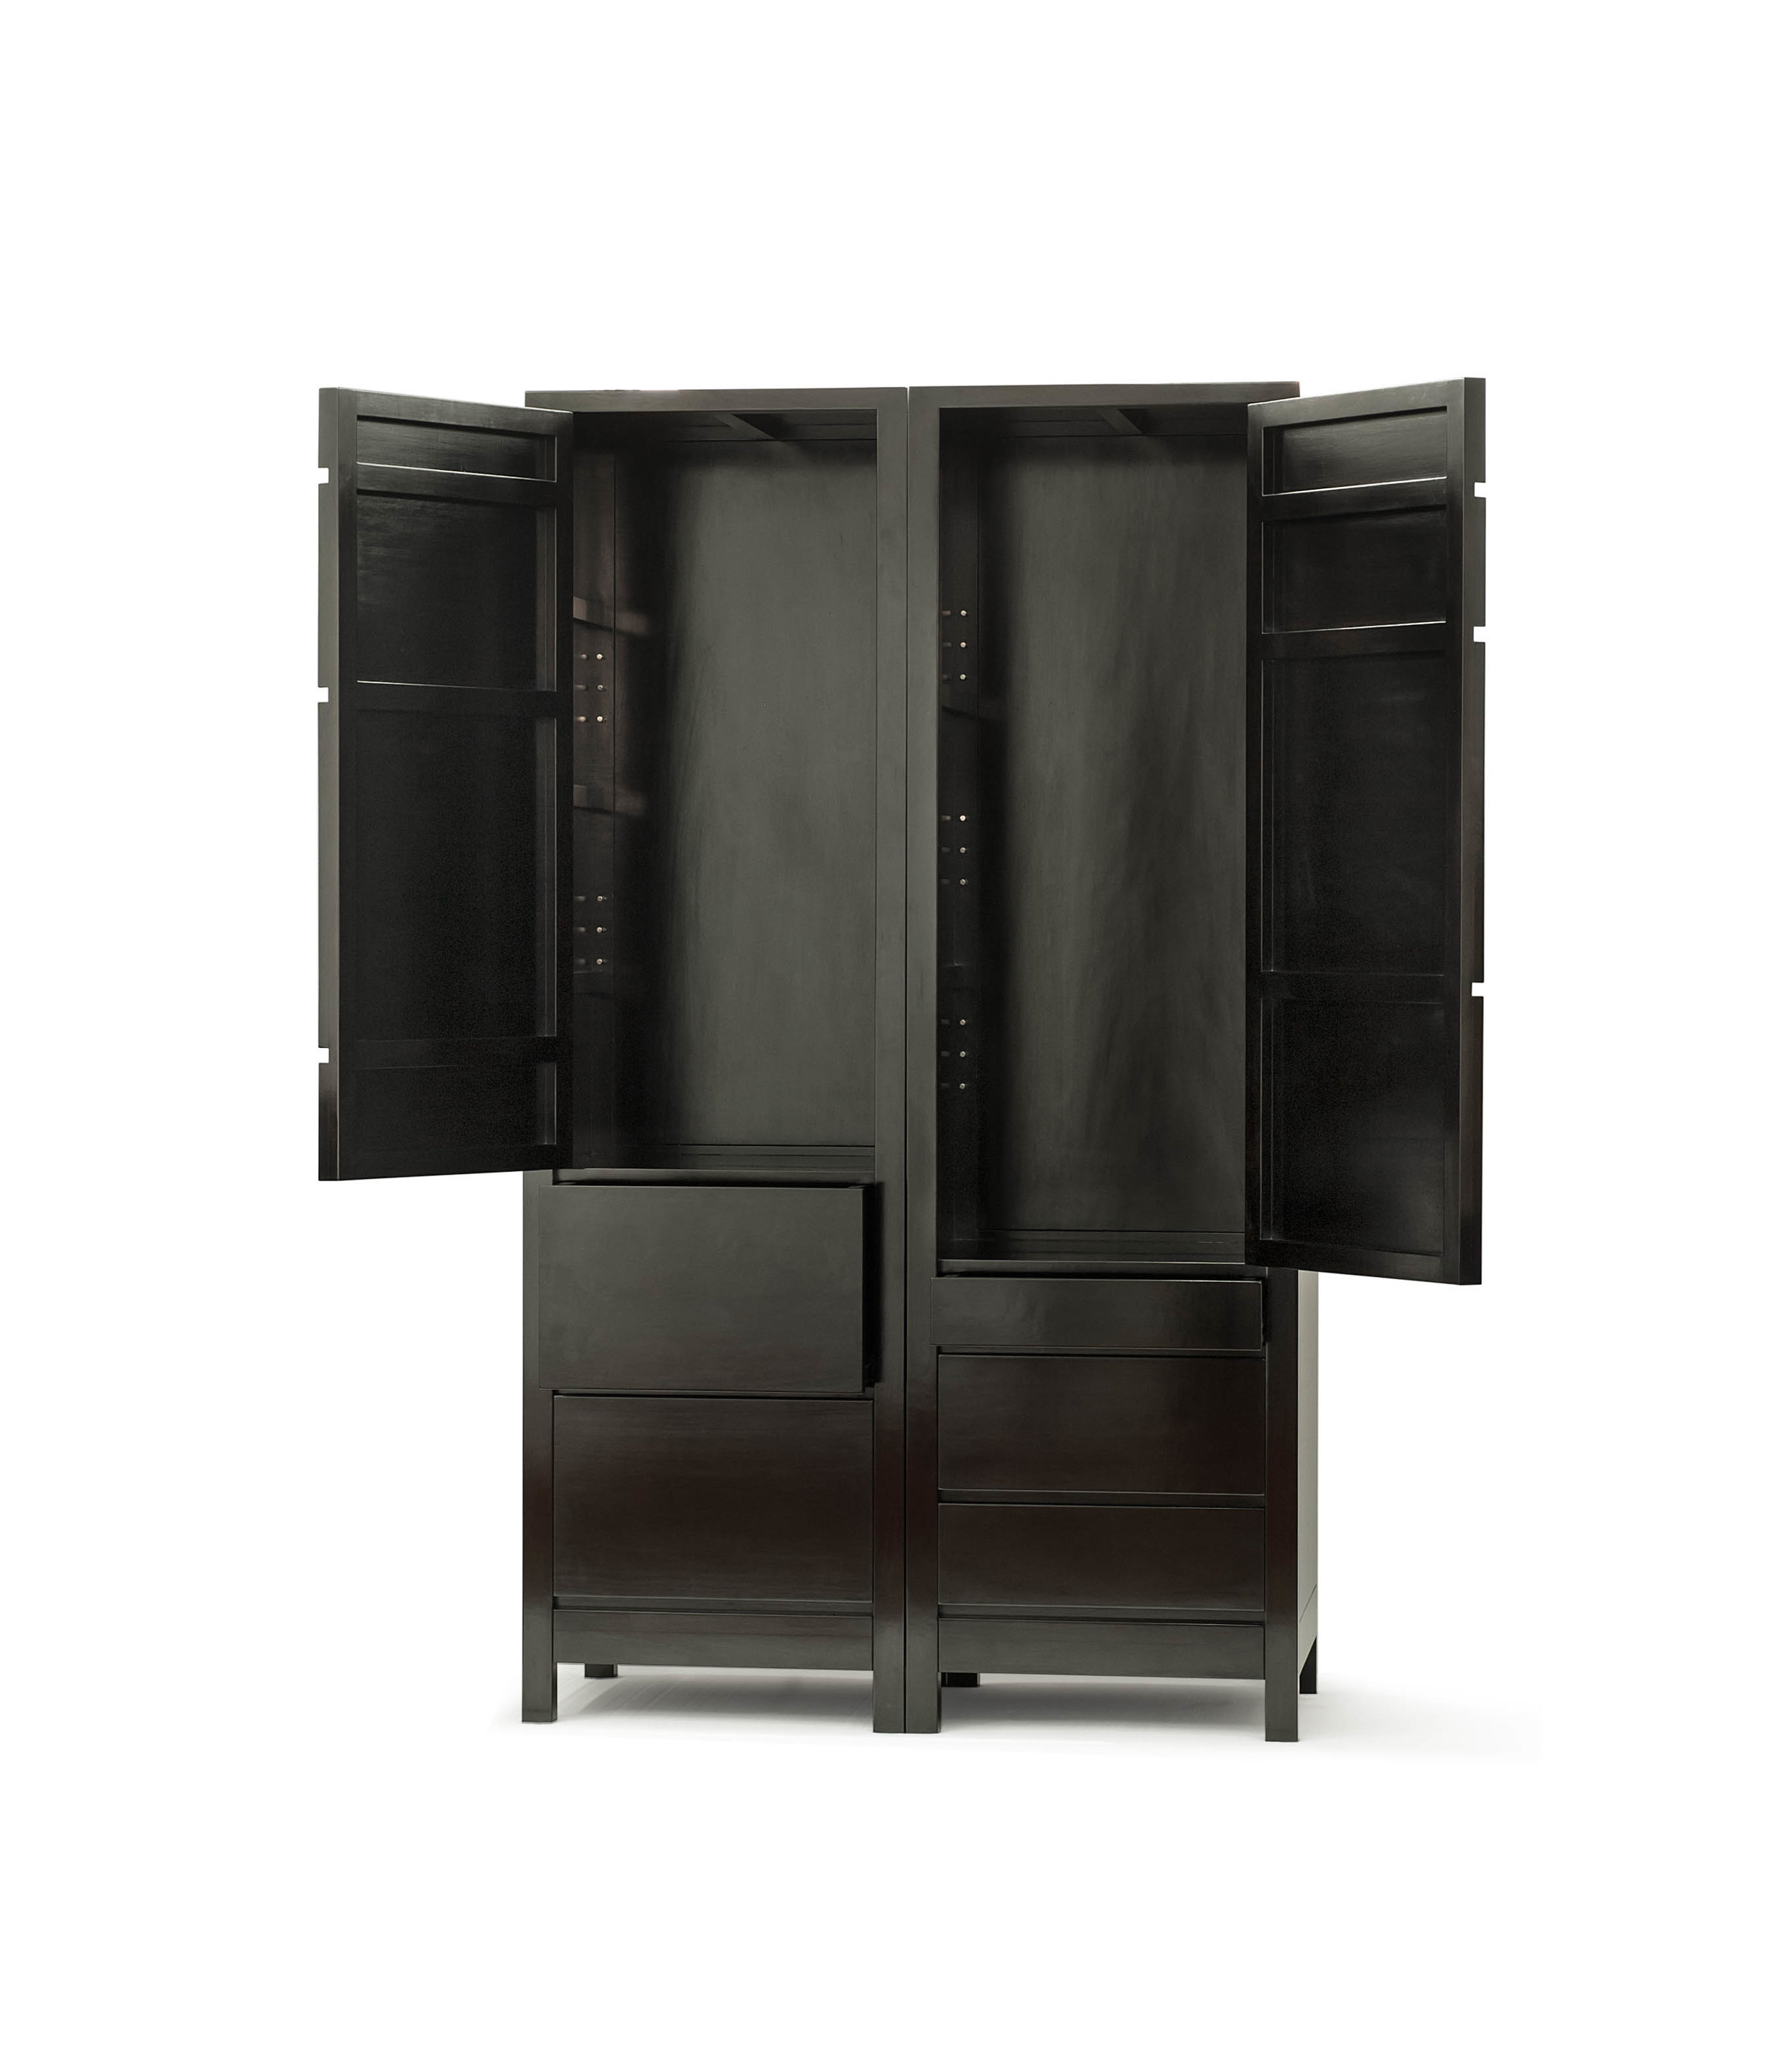 ....bespoke modern chinese furniture : filing cabinets..特别定制现代中式家具 : 文件柜....